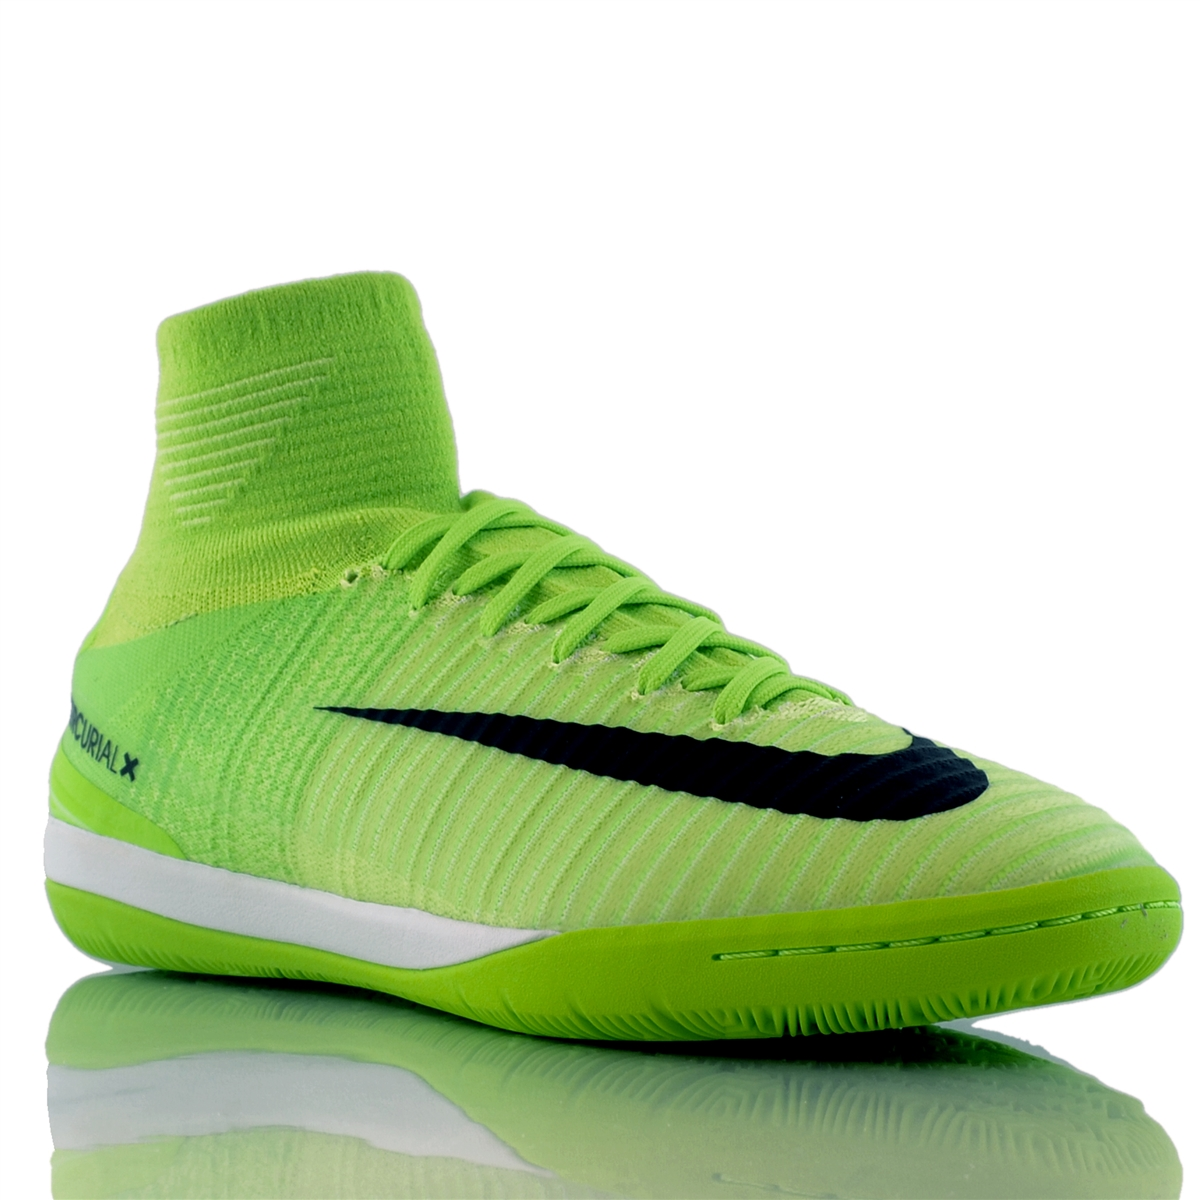 7c92bcc5d Nike MercurialX Proximo II DF IC Indoor Soccer Shoes (Electric Green ...